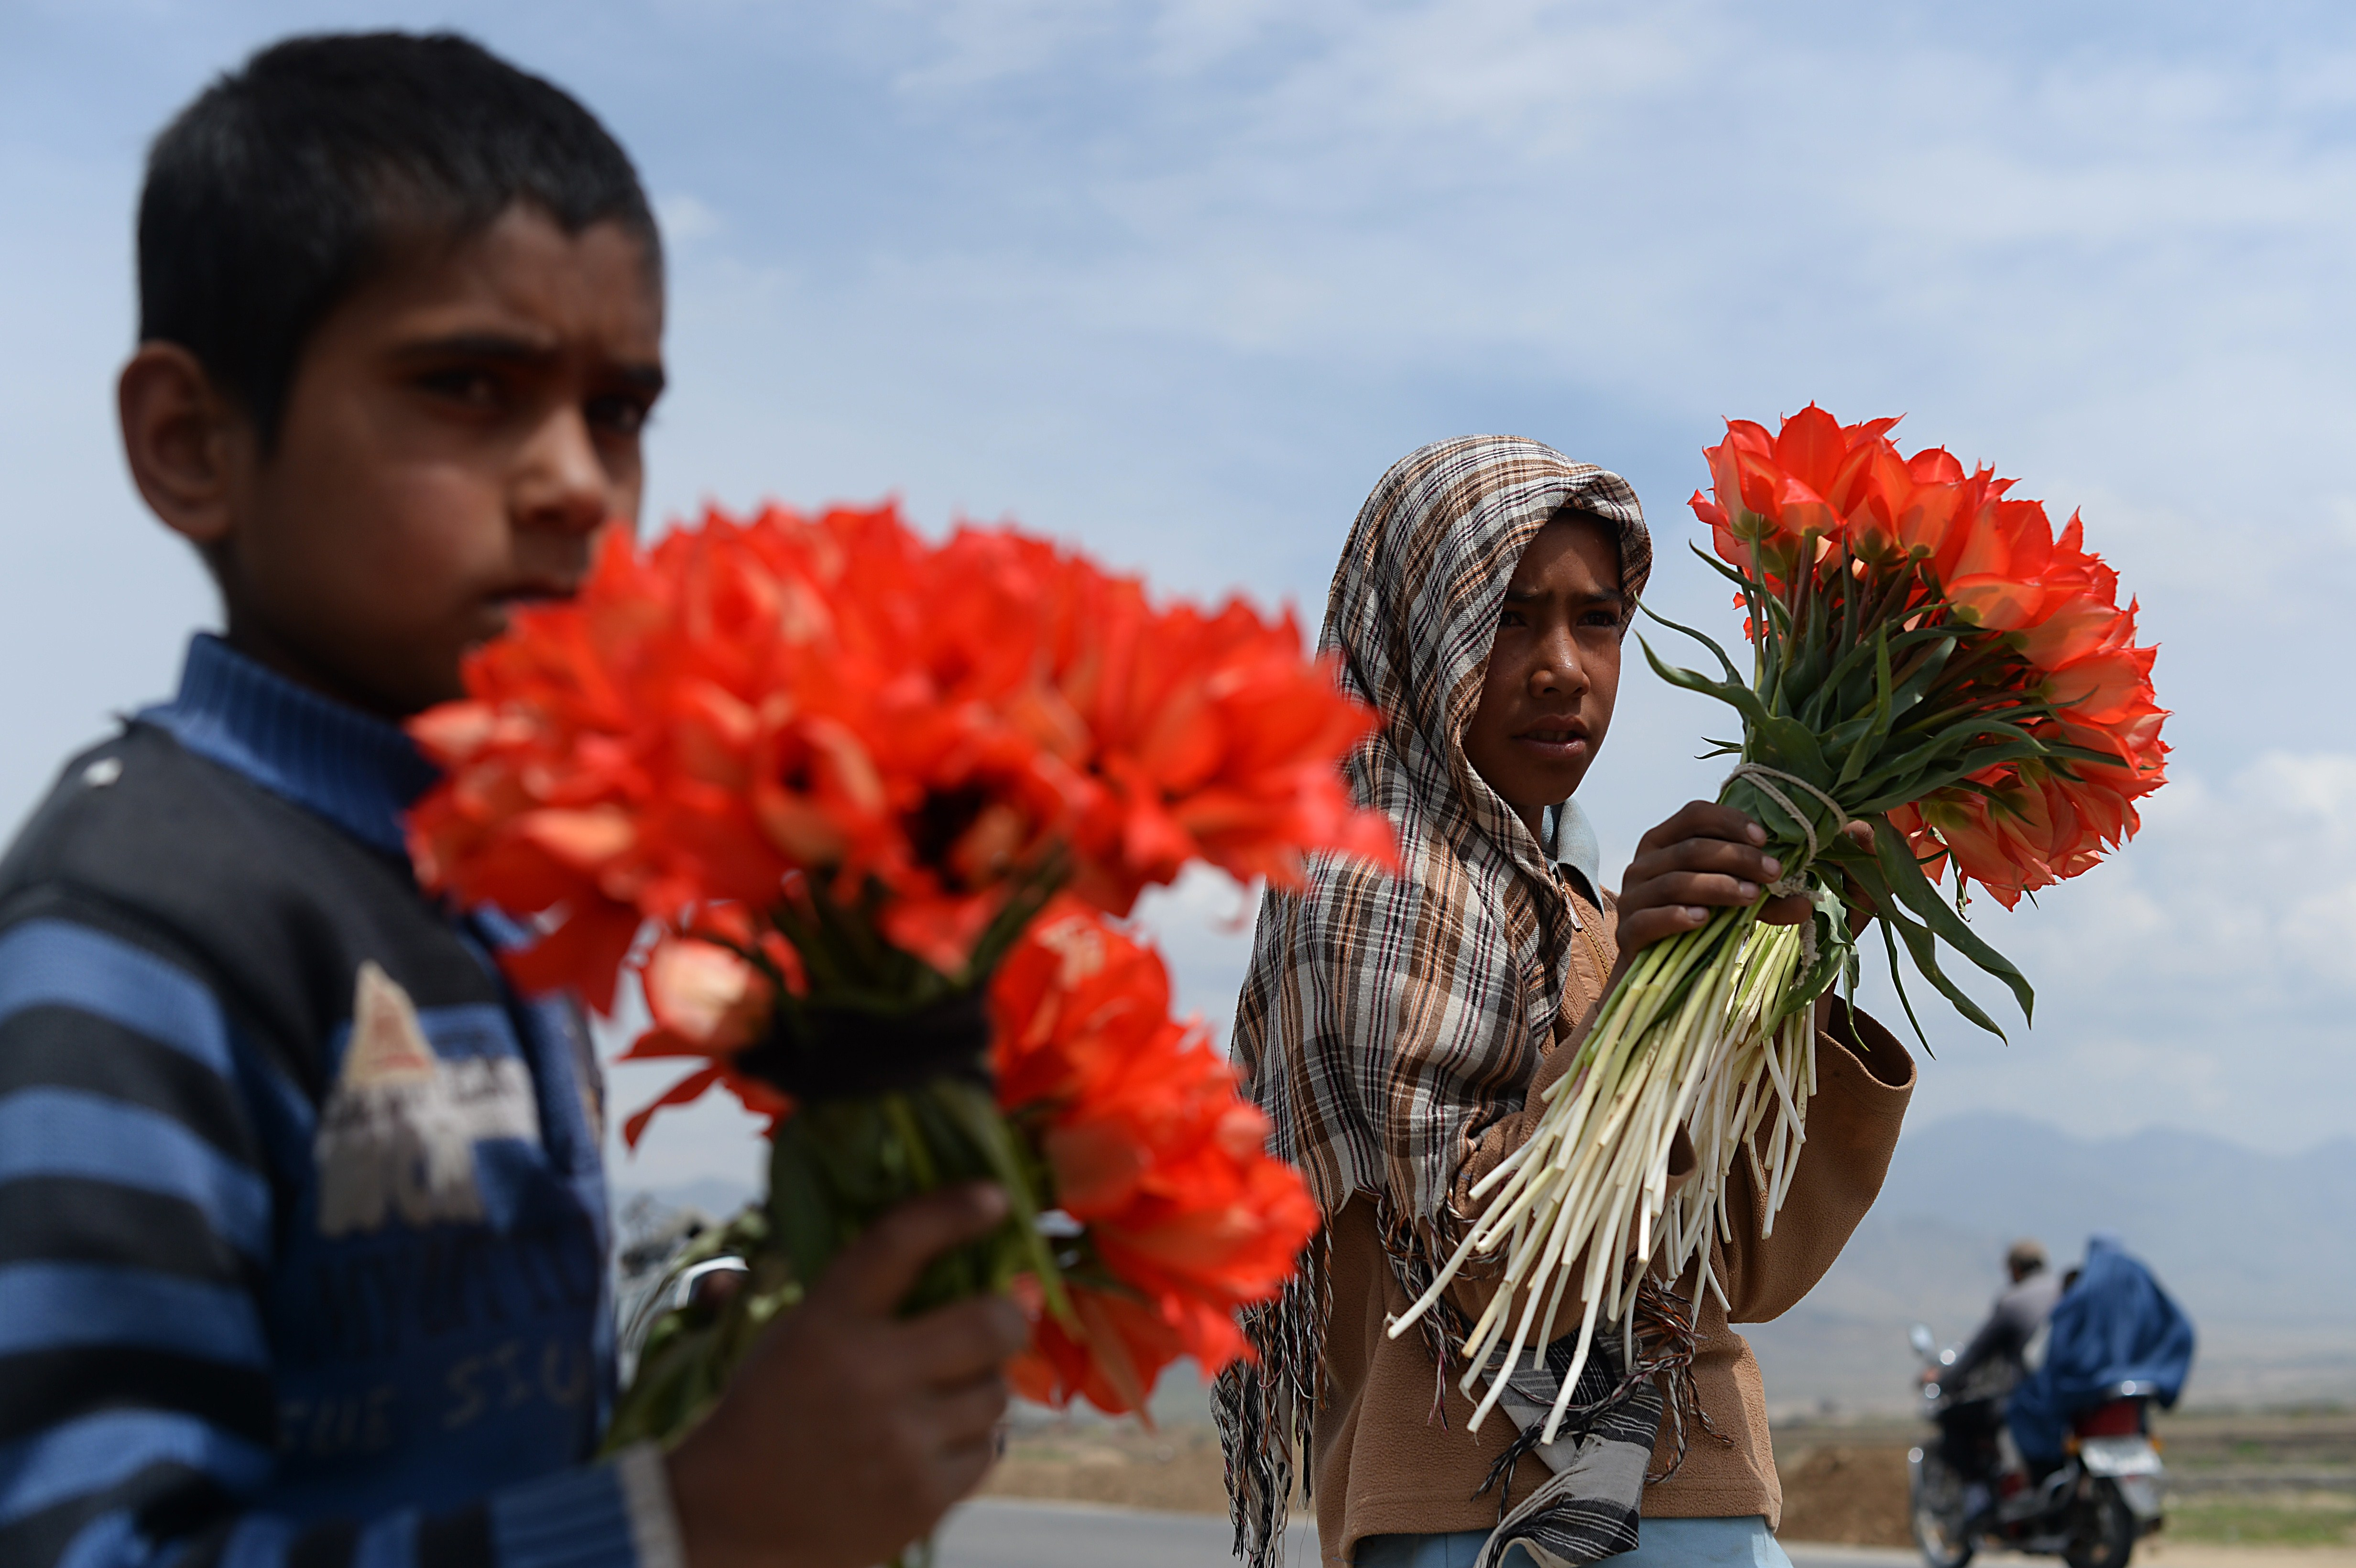 Afghan children Malik, 8, and Popal, 11, wait at a roadside with wild tulips for sale to potential customers driving through the Shamali plains, north of Kabul.